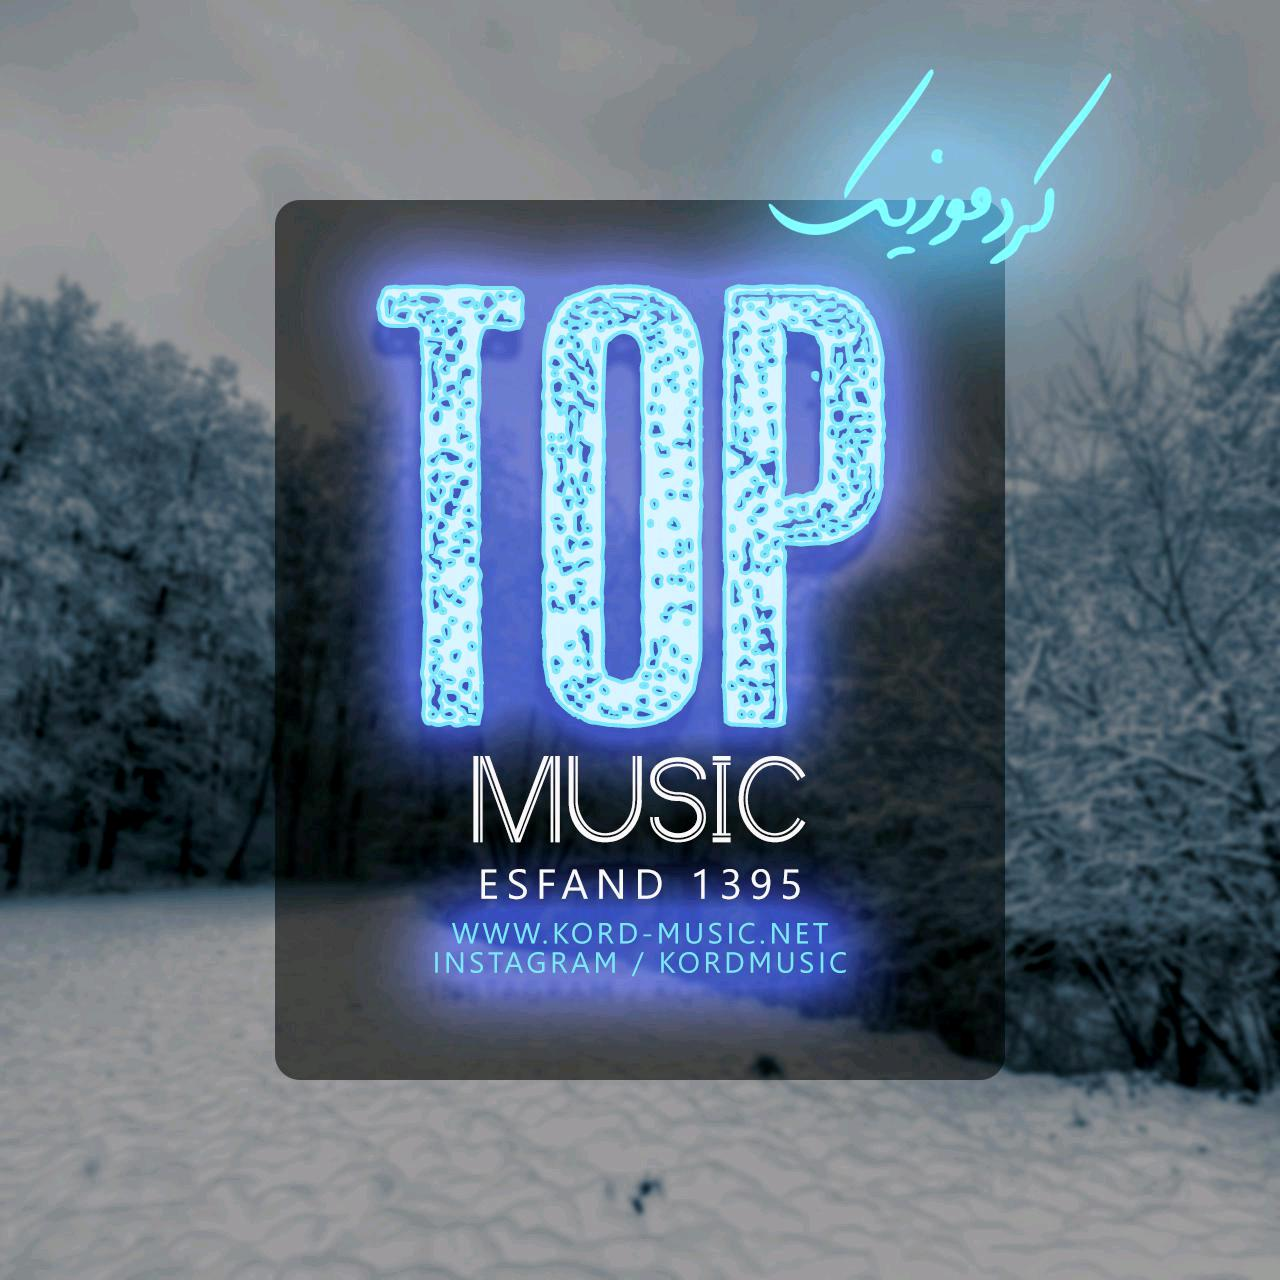 http://dl2.kord-music.net/1395/12/Top/Top%20Cover.jpg